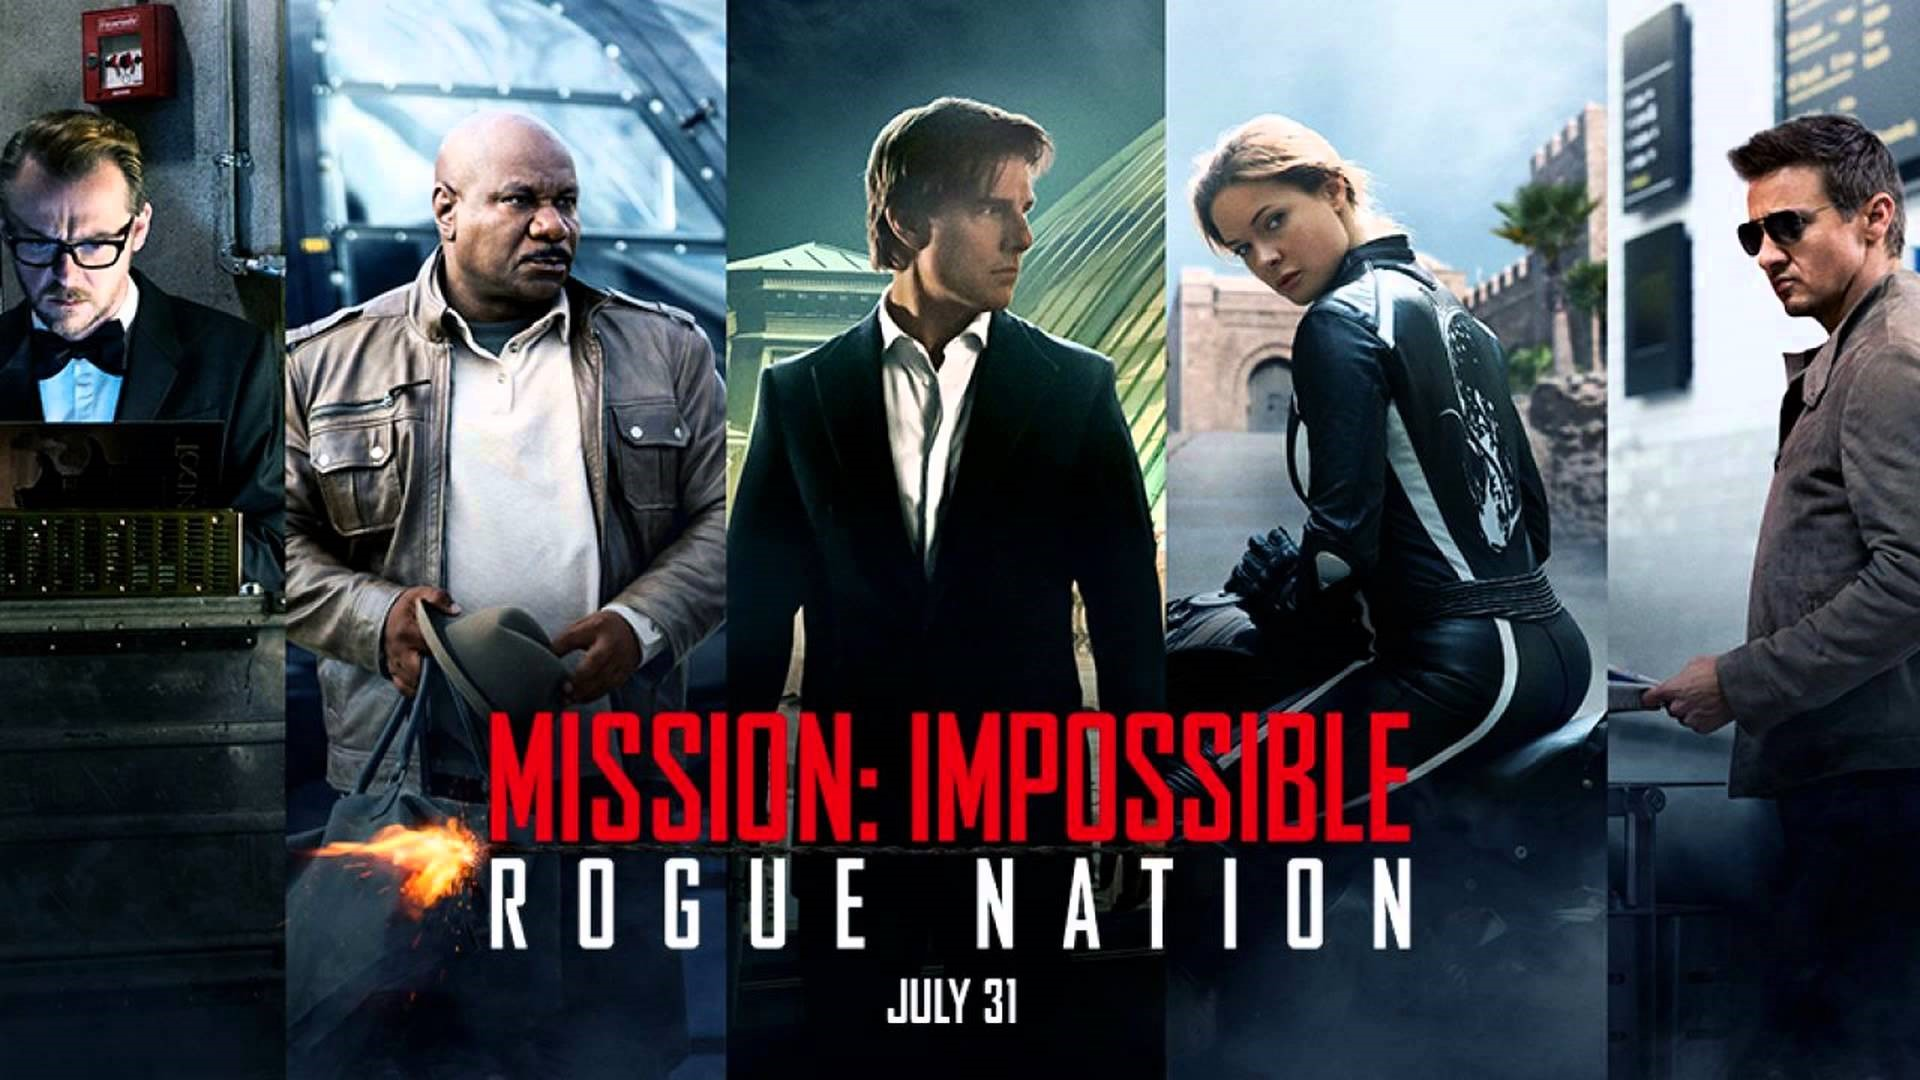 Tom Cruise and others in Mission Impossible - Rogue Nation